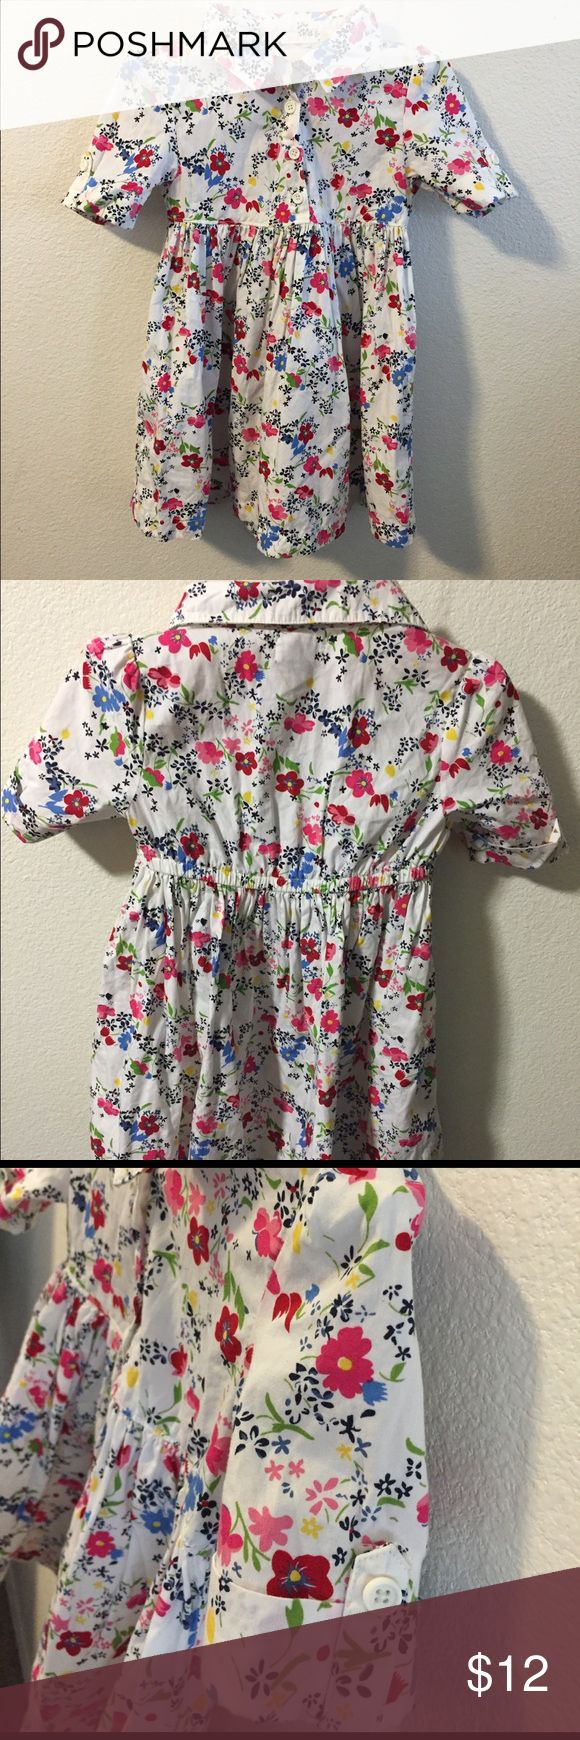 OLD NAVY Spring Dress 🌸🌼 Dress is pre ❤ in good condition. Perfect for spring with elastic waistband on the back and folded button sleeves. Old Navy Dresses Casual